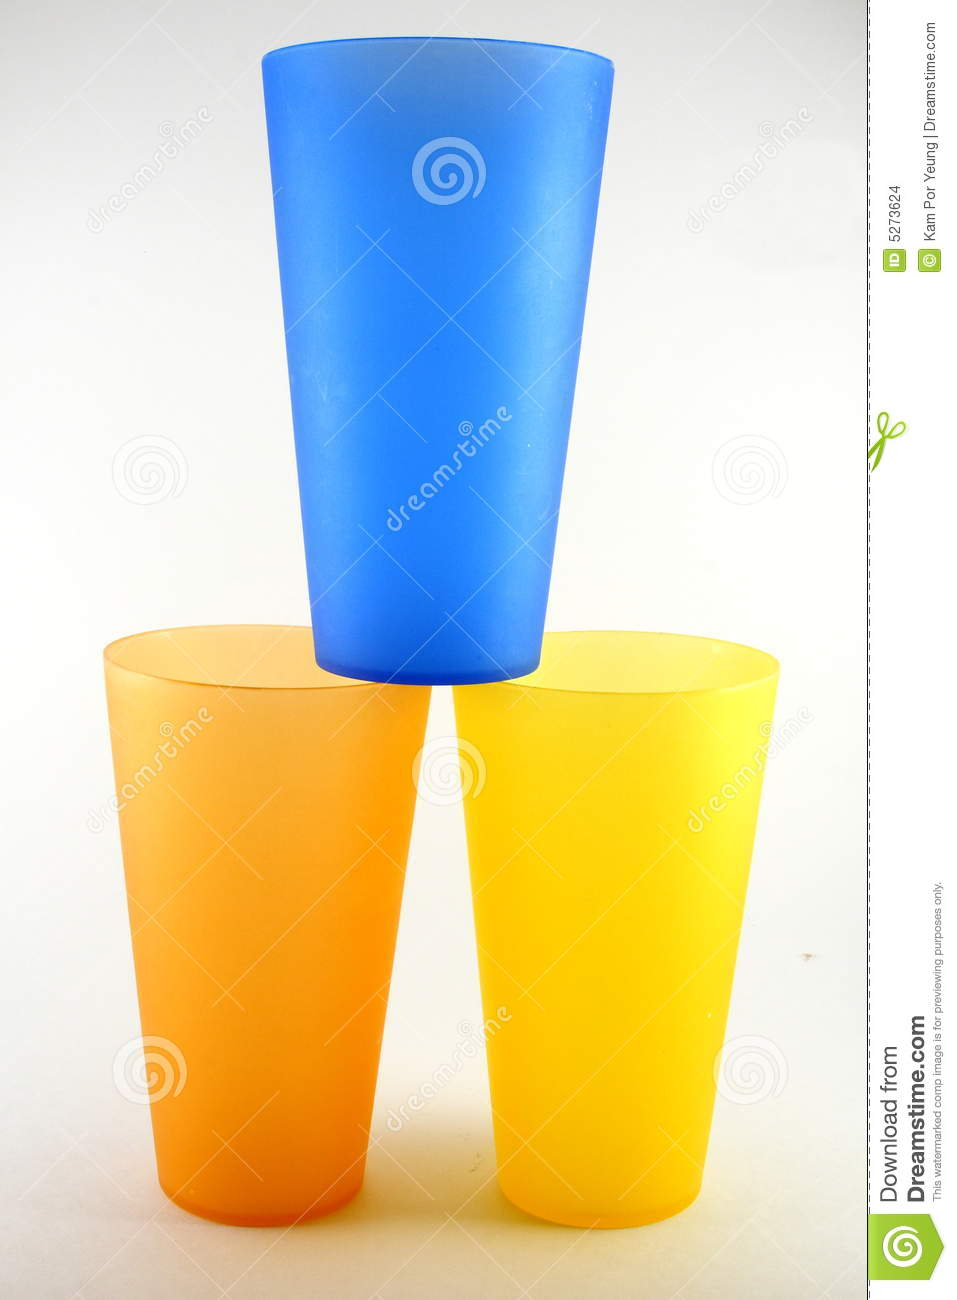 Stacked plastic party cups